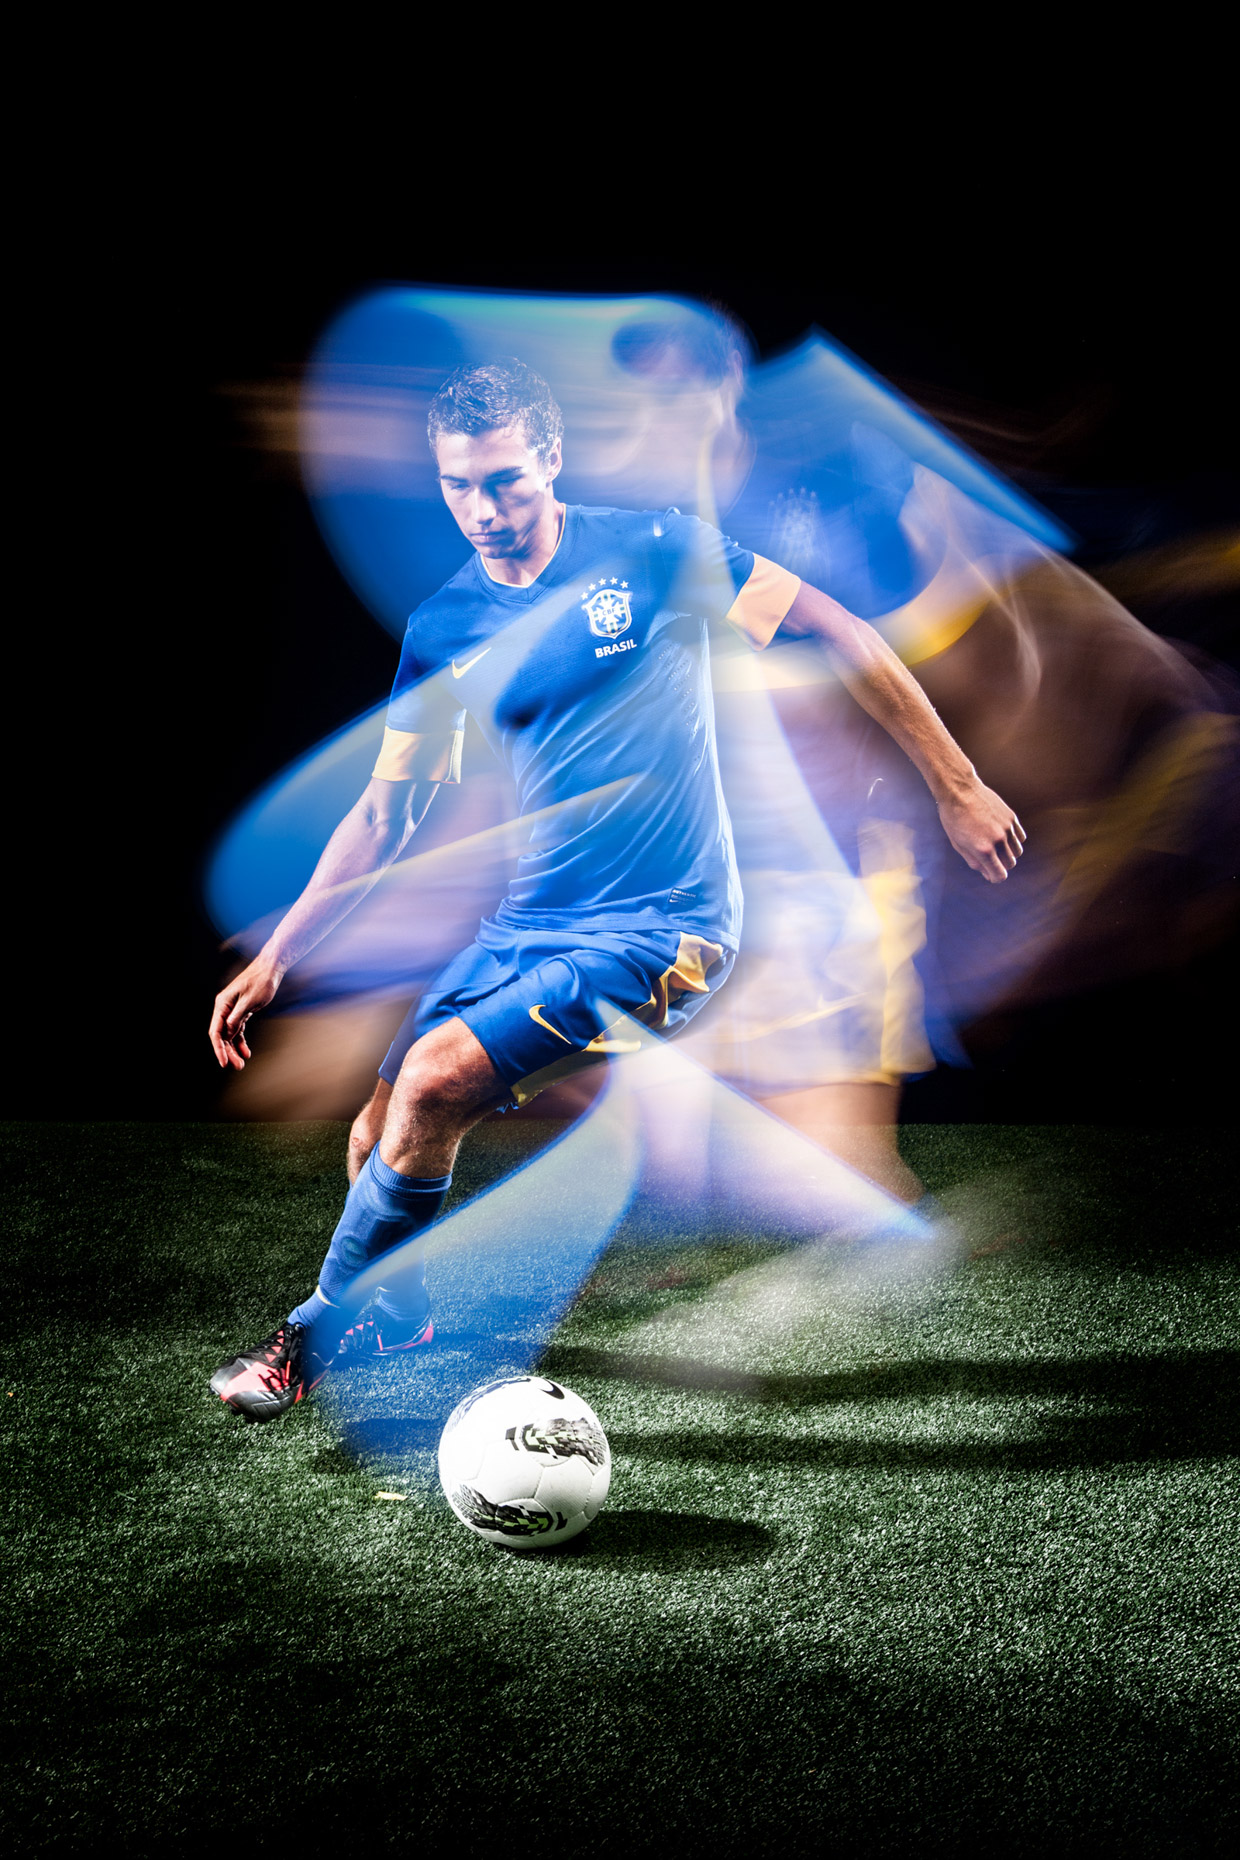 Stroboscopic lighting technique for soccer